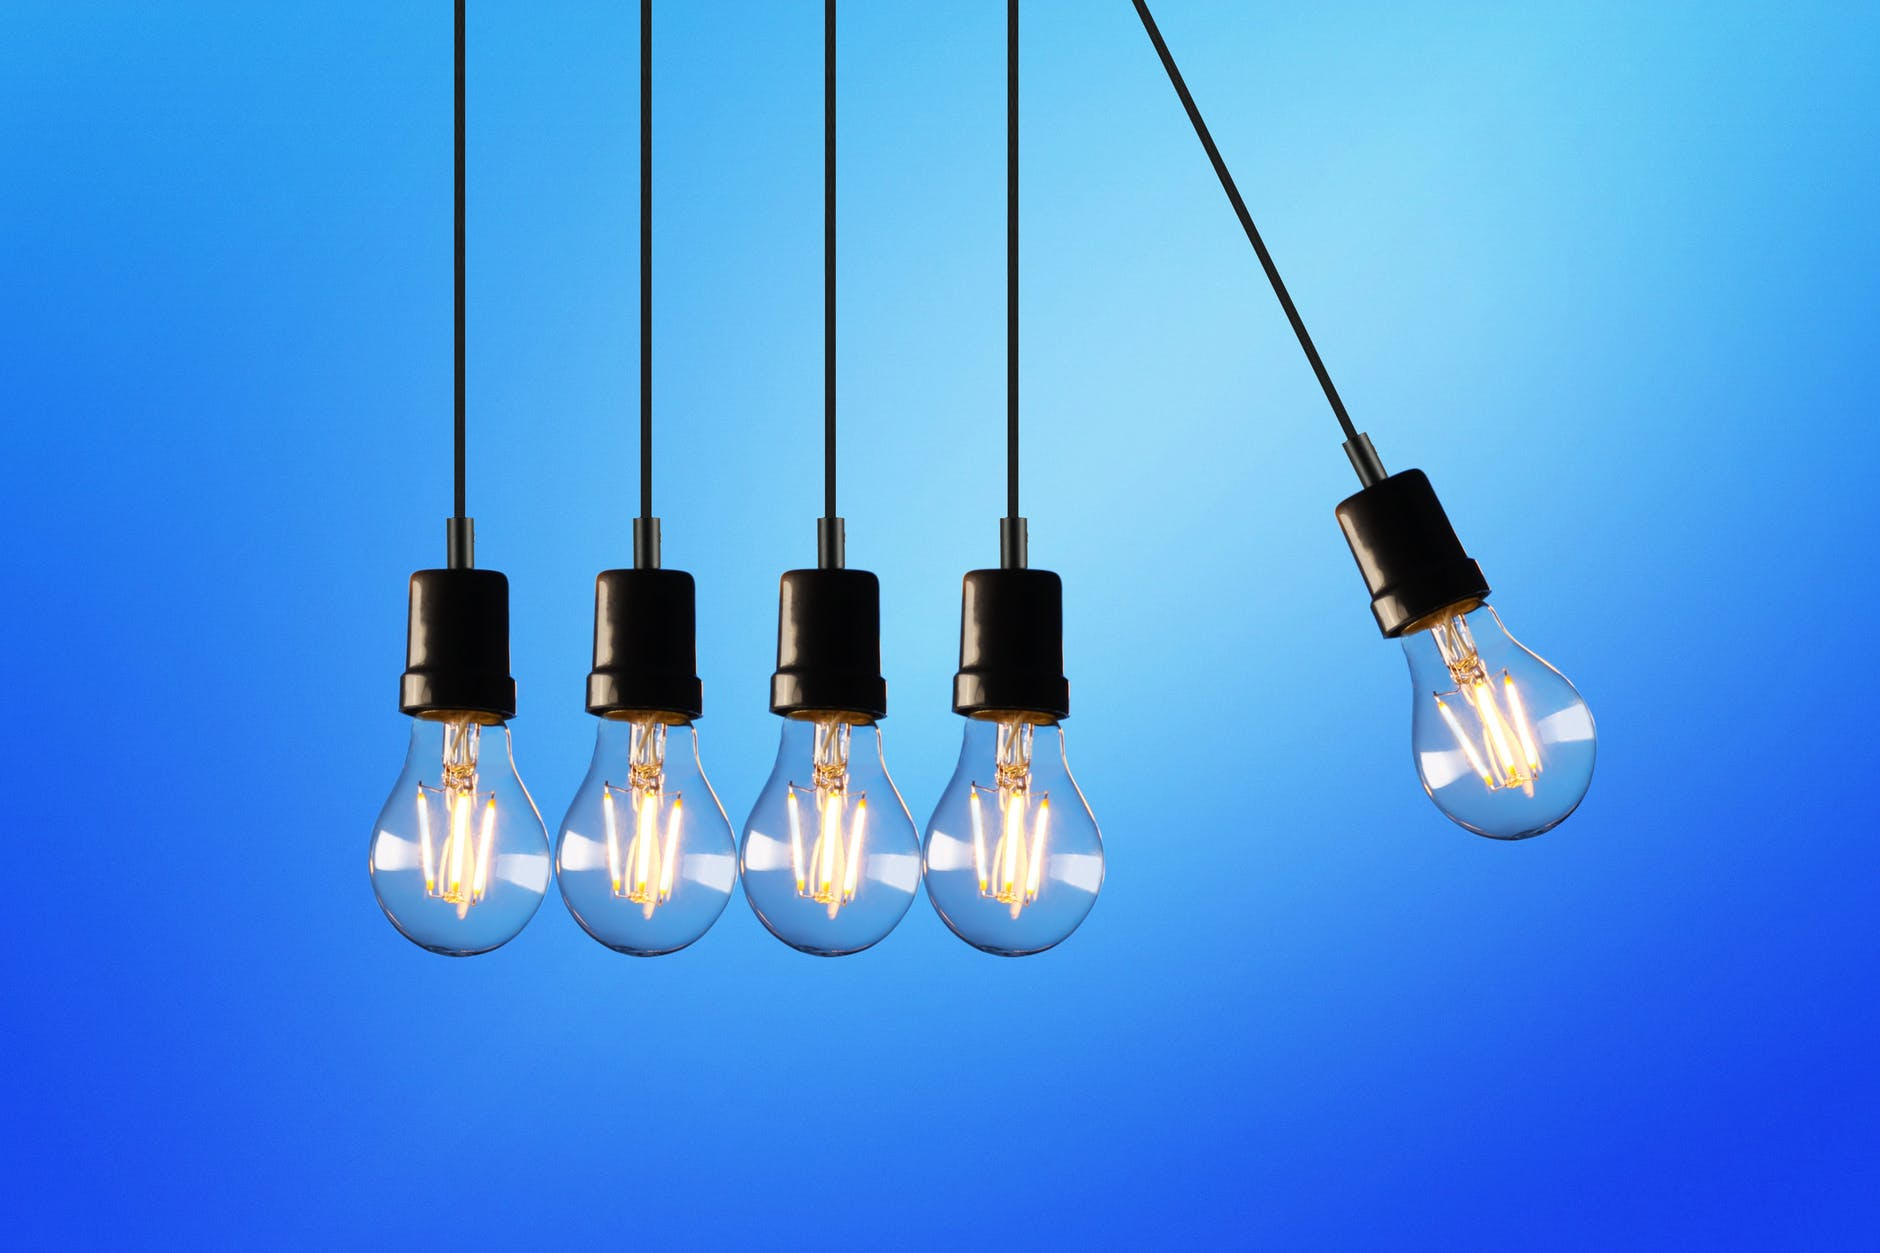 Pendulum Light Bulbs Image - Keeping up with Payment Technology